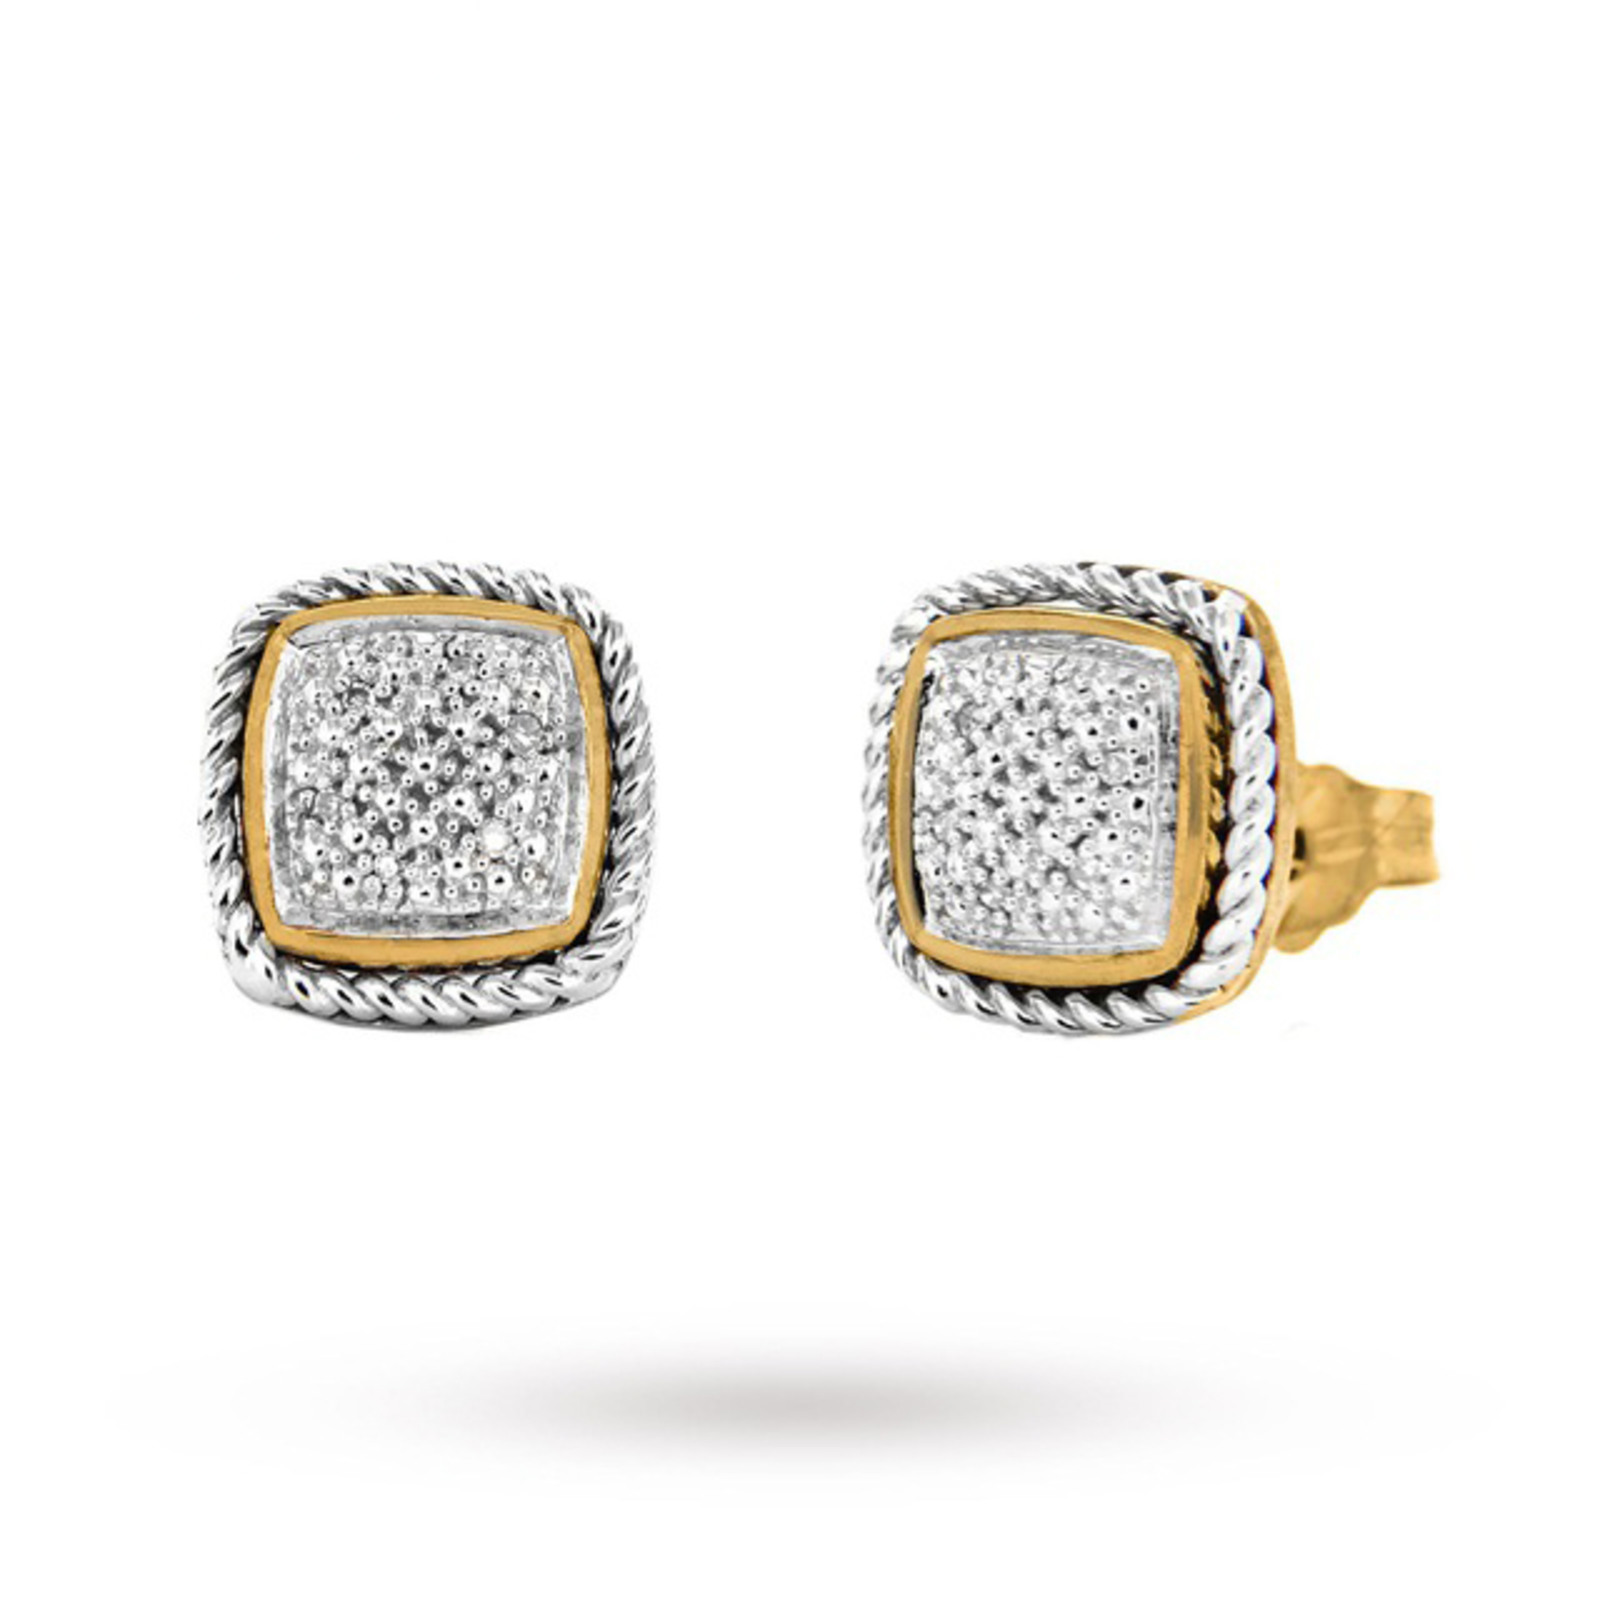 diamond a pdp rsp davis square com earrings main gold at garnet online buya b stud johnlewis lewis john